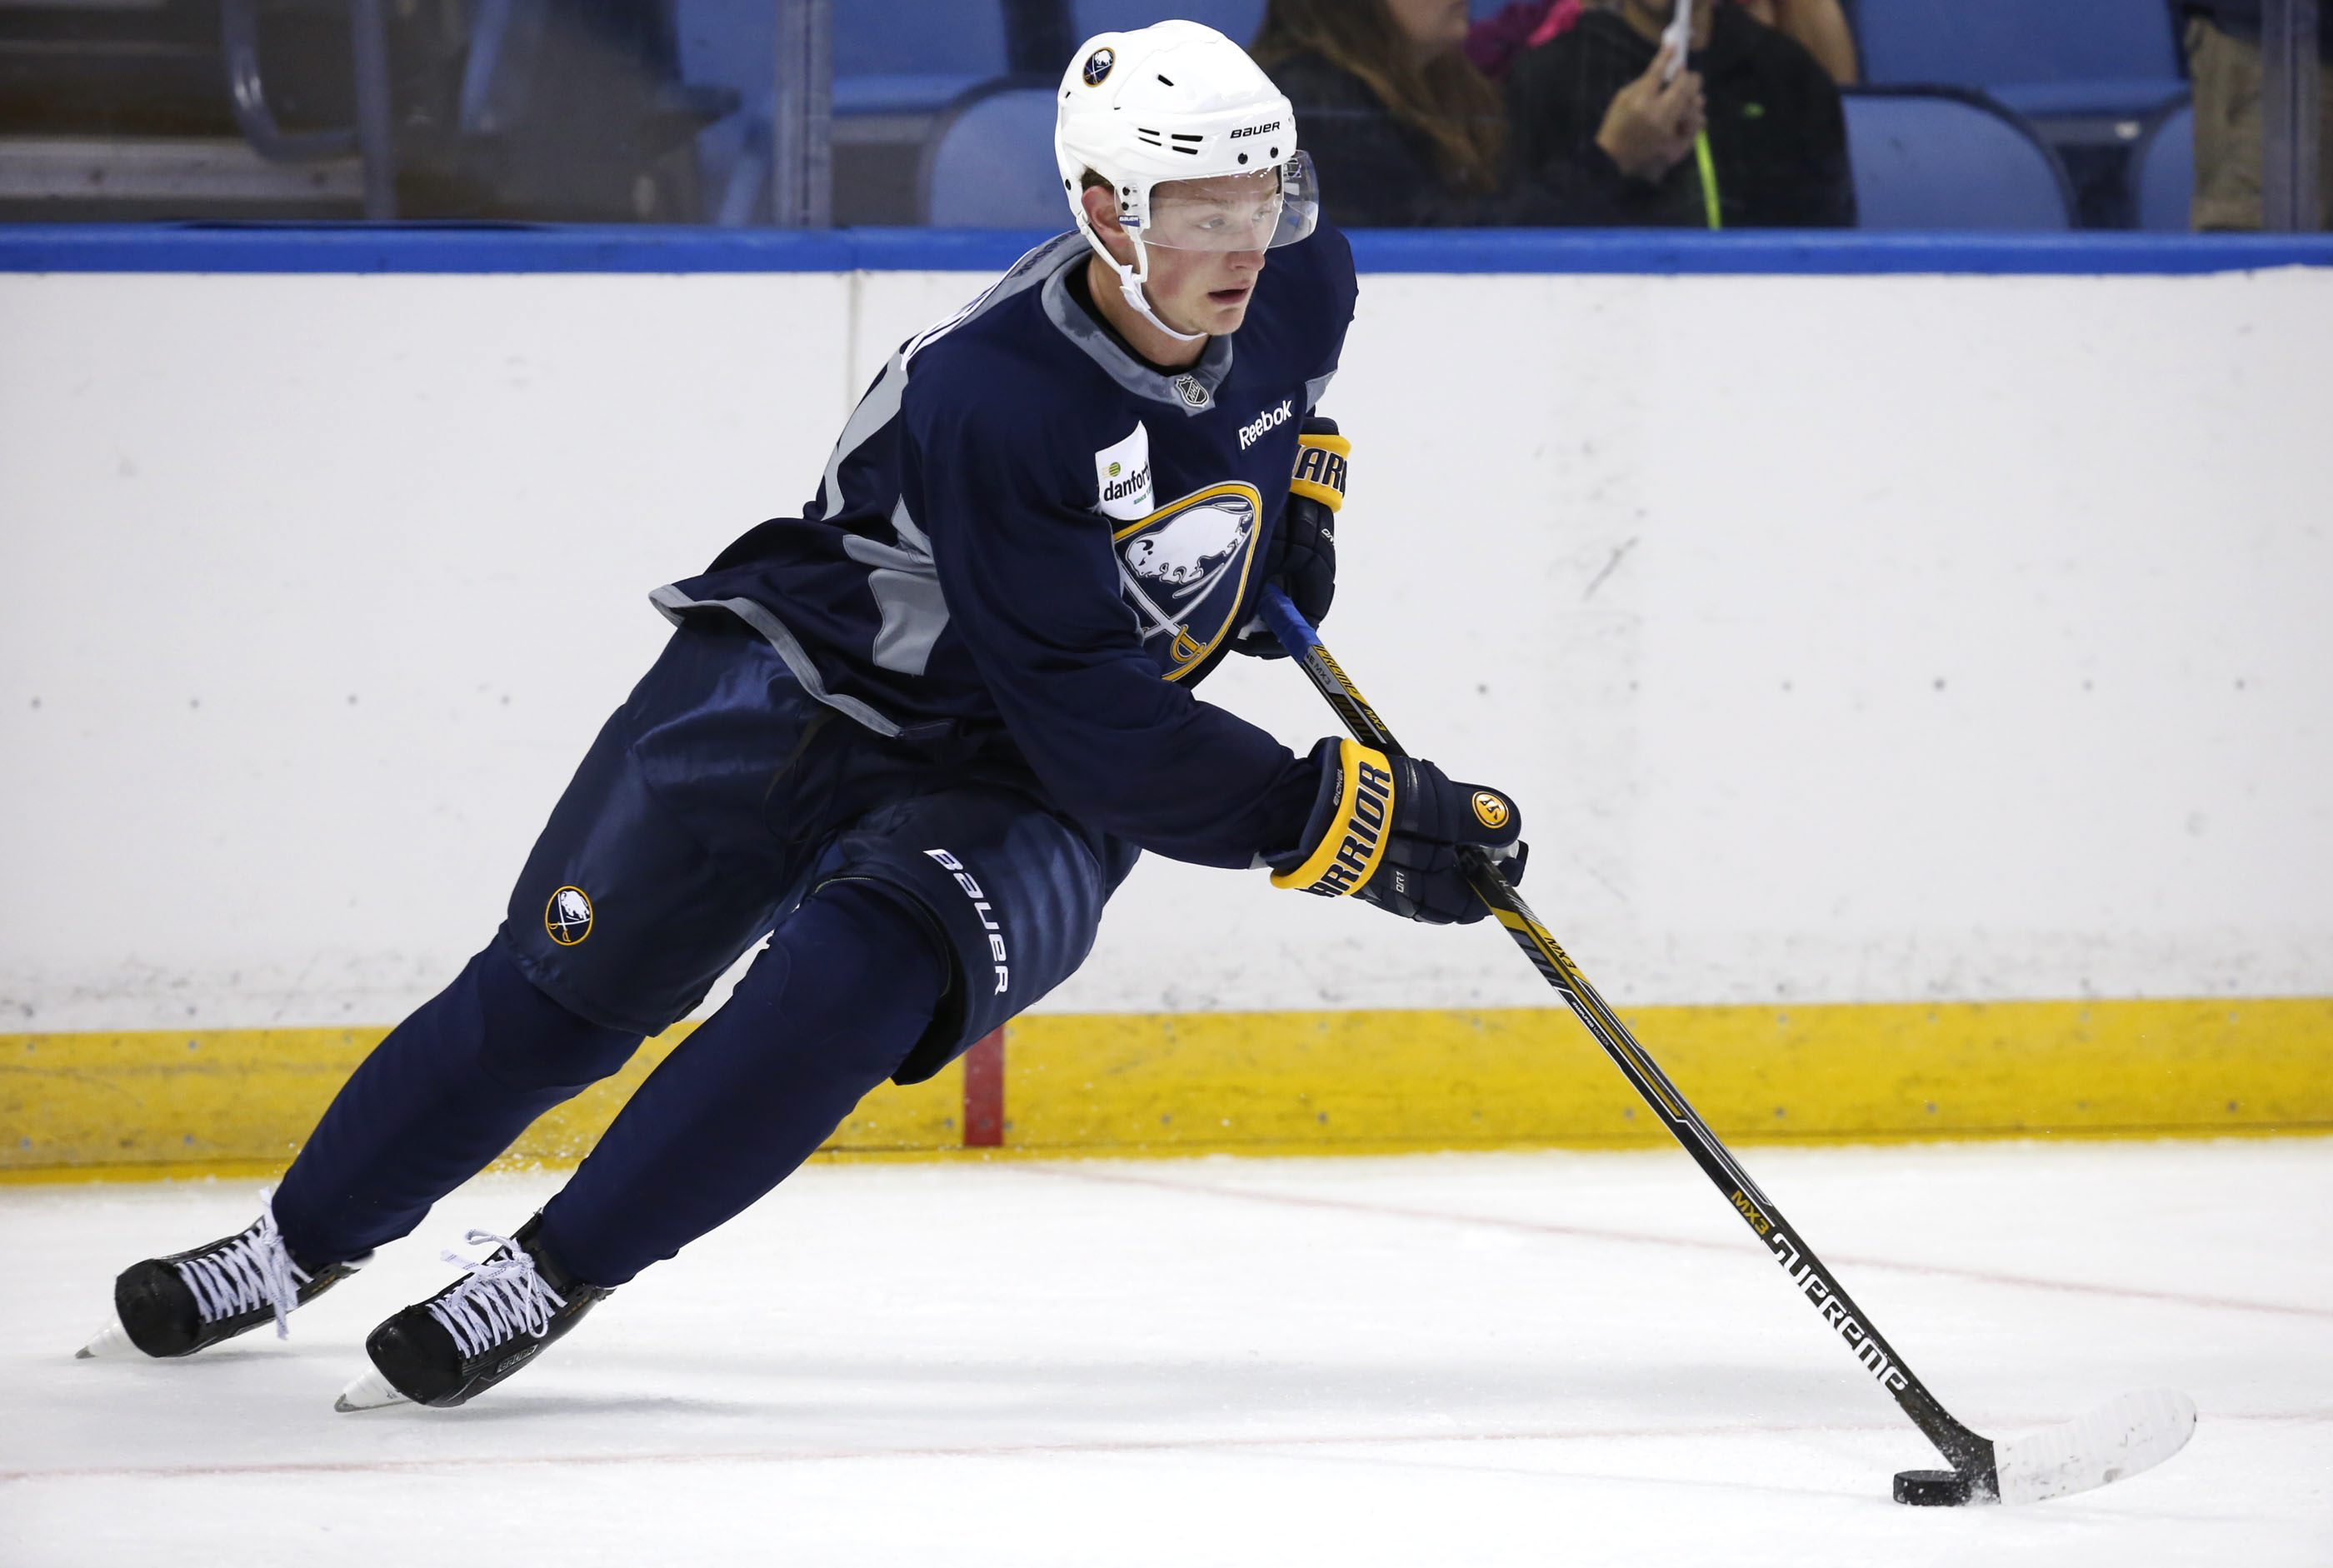 Jack Eichel wore No. 41 at the Sabres Development Camp on Monday, but he's not expected to keep it over the long term.